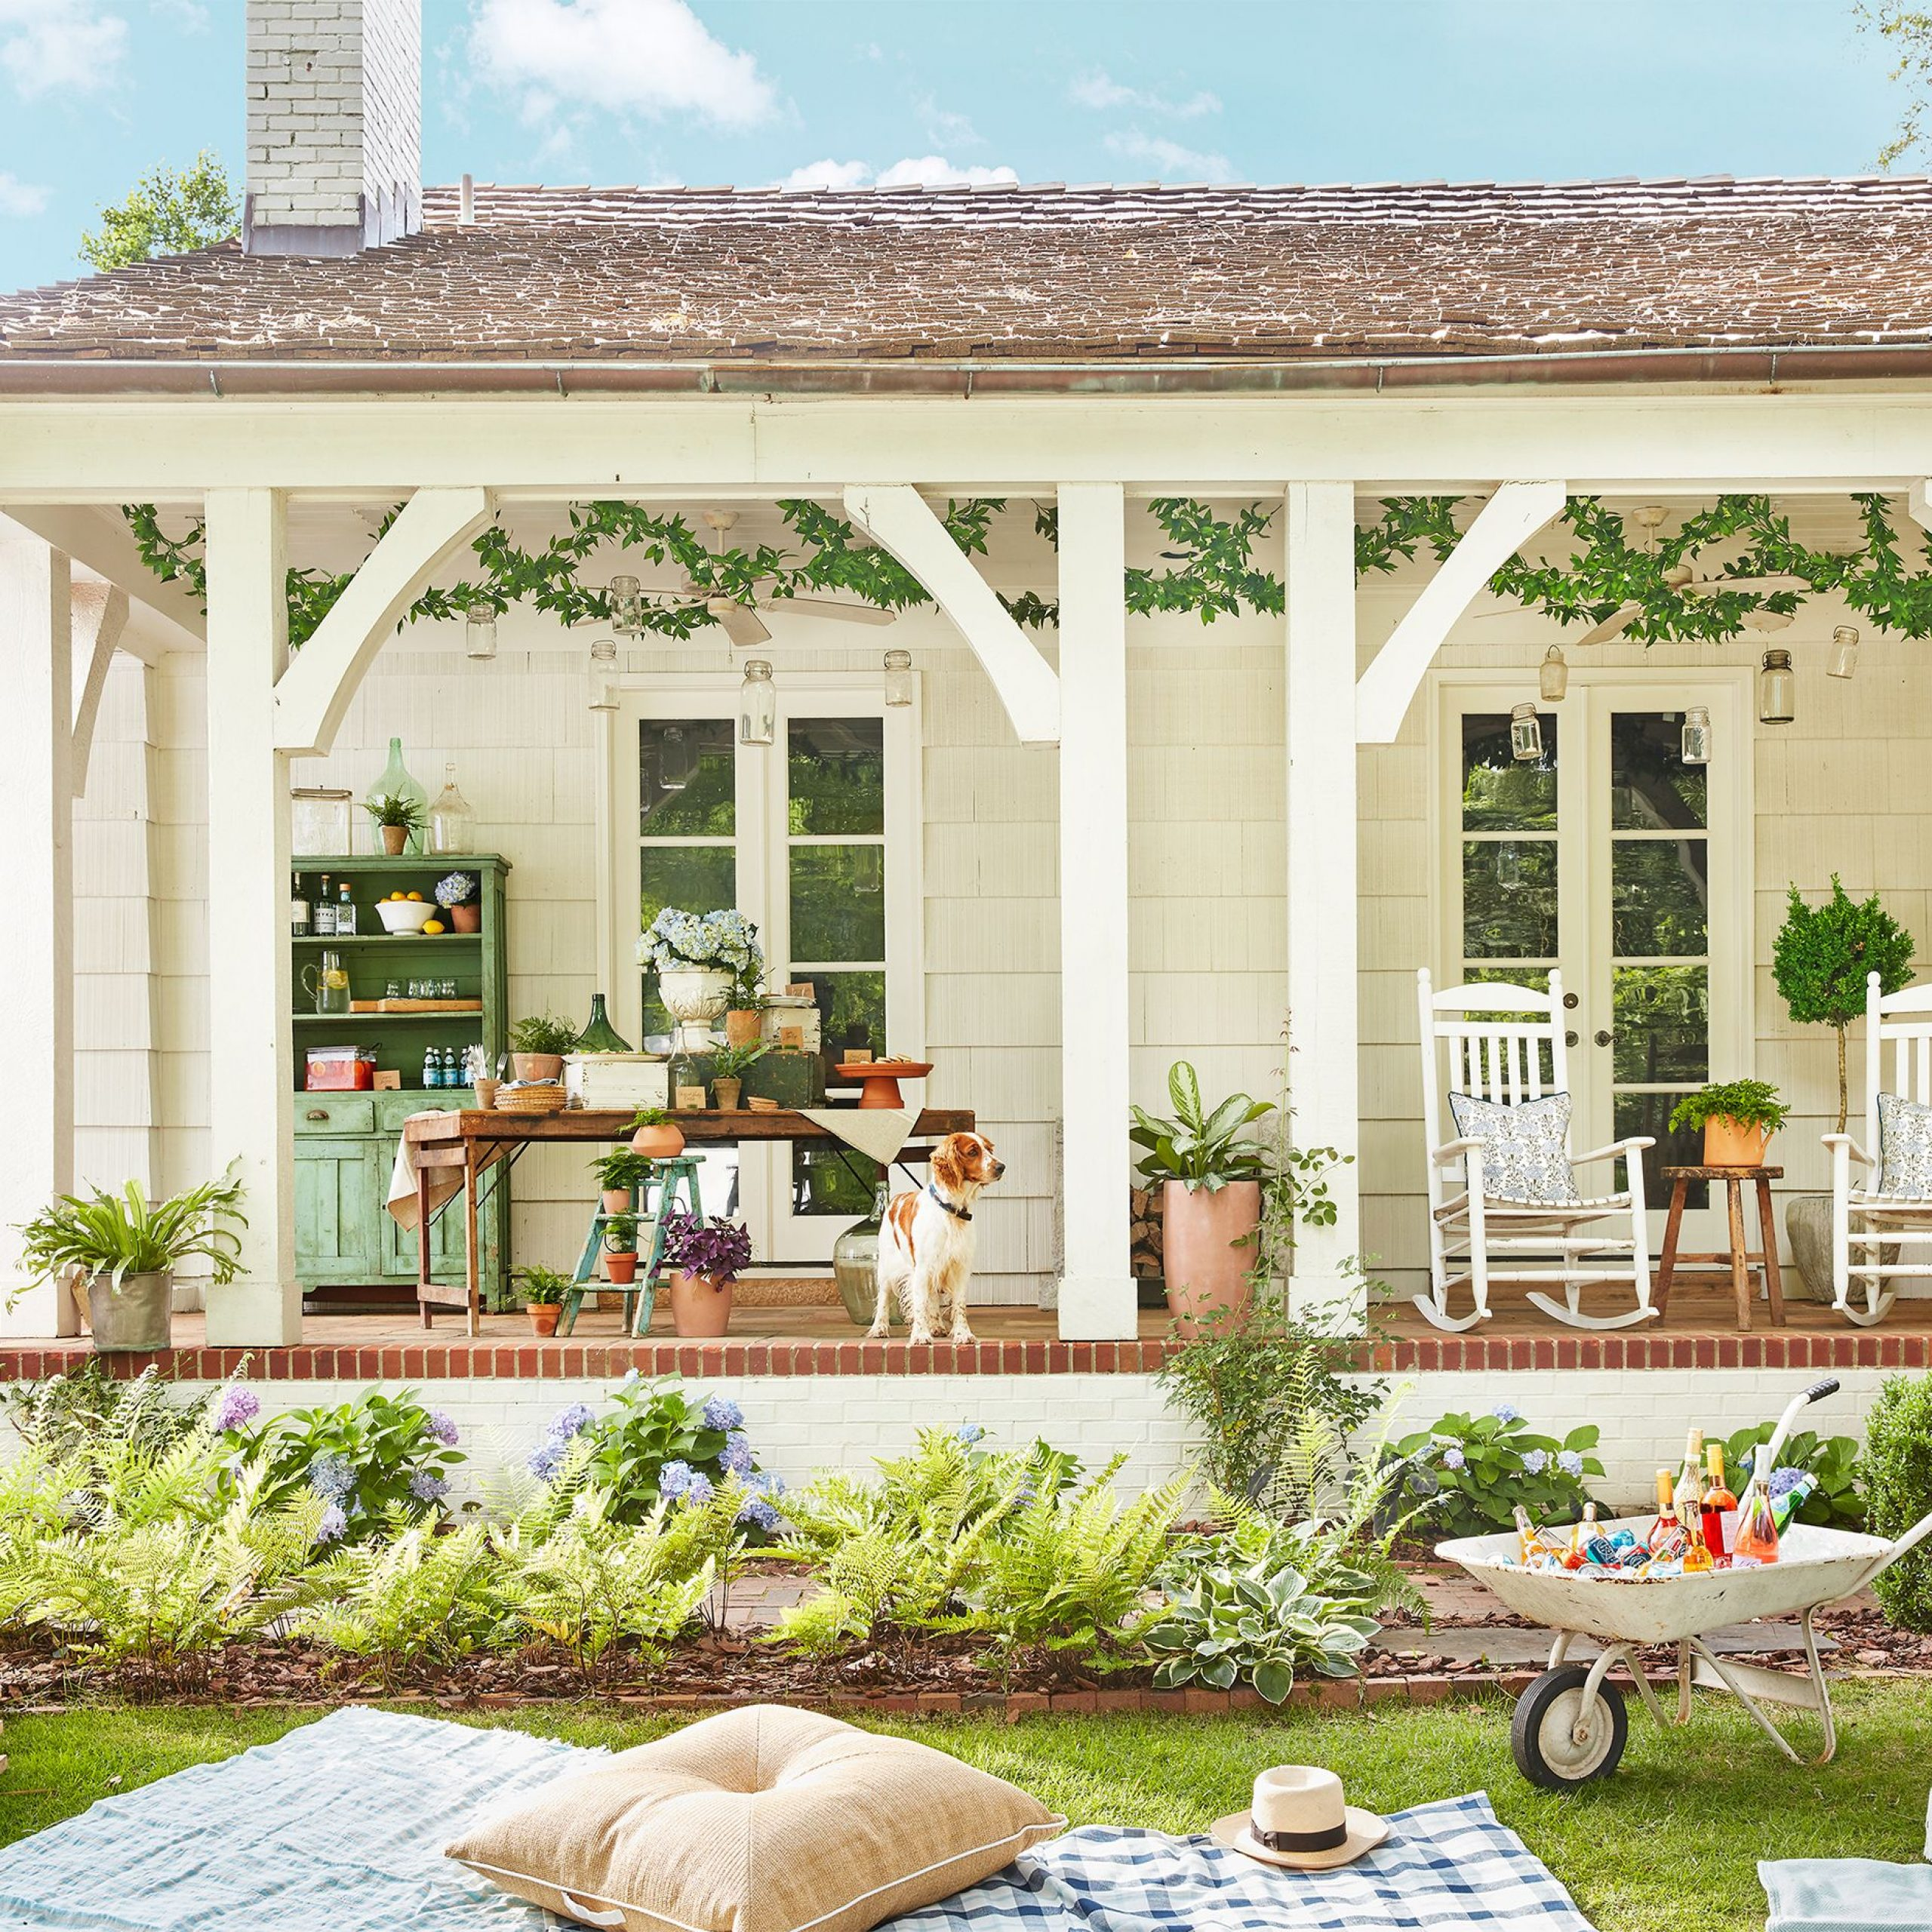 28 Charming Front Porch Ideas – Chic Porch Design And With Regard To Lamp Outdoor Porch Swings (View 14 of 25)